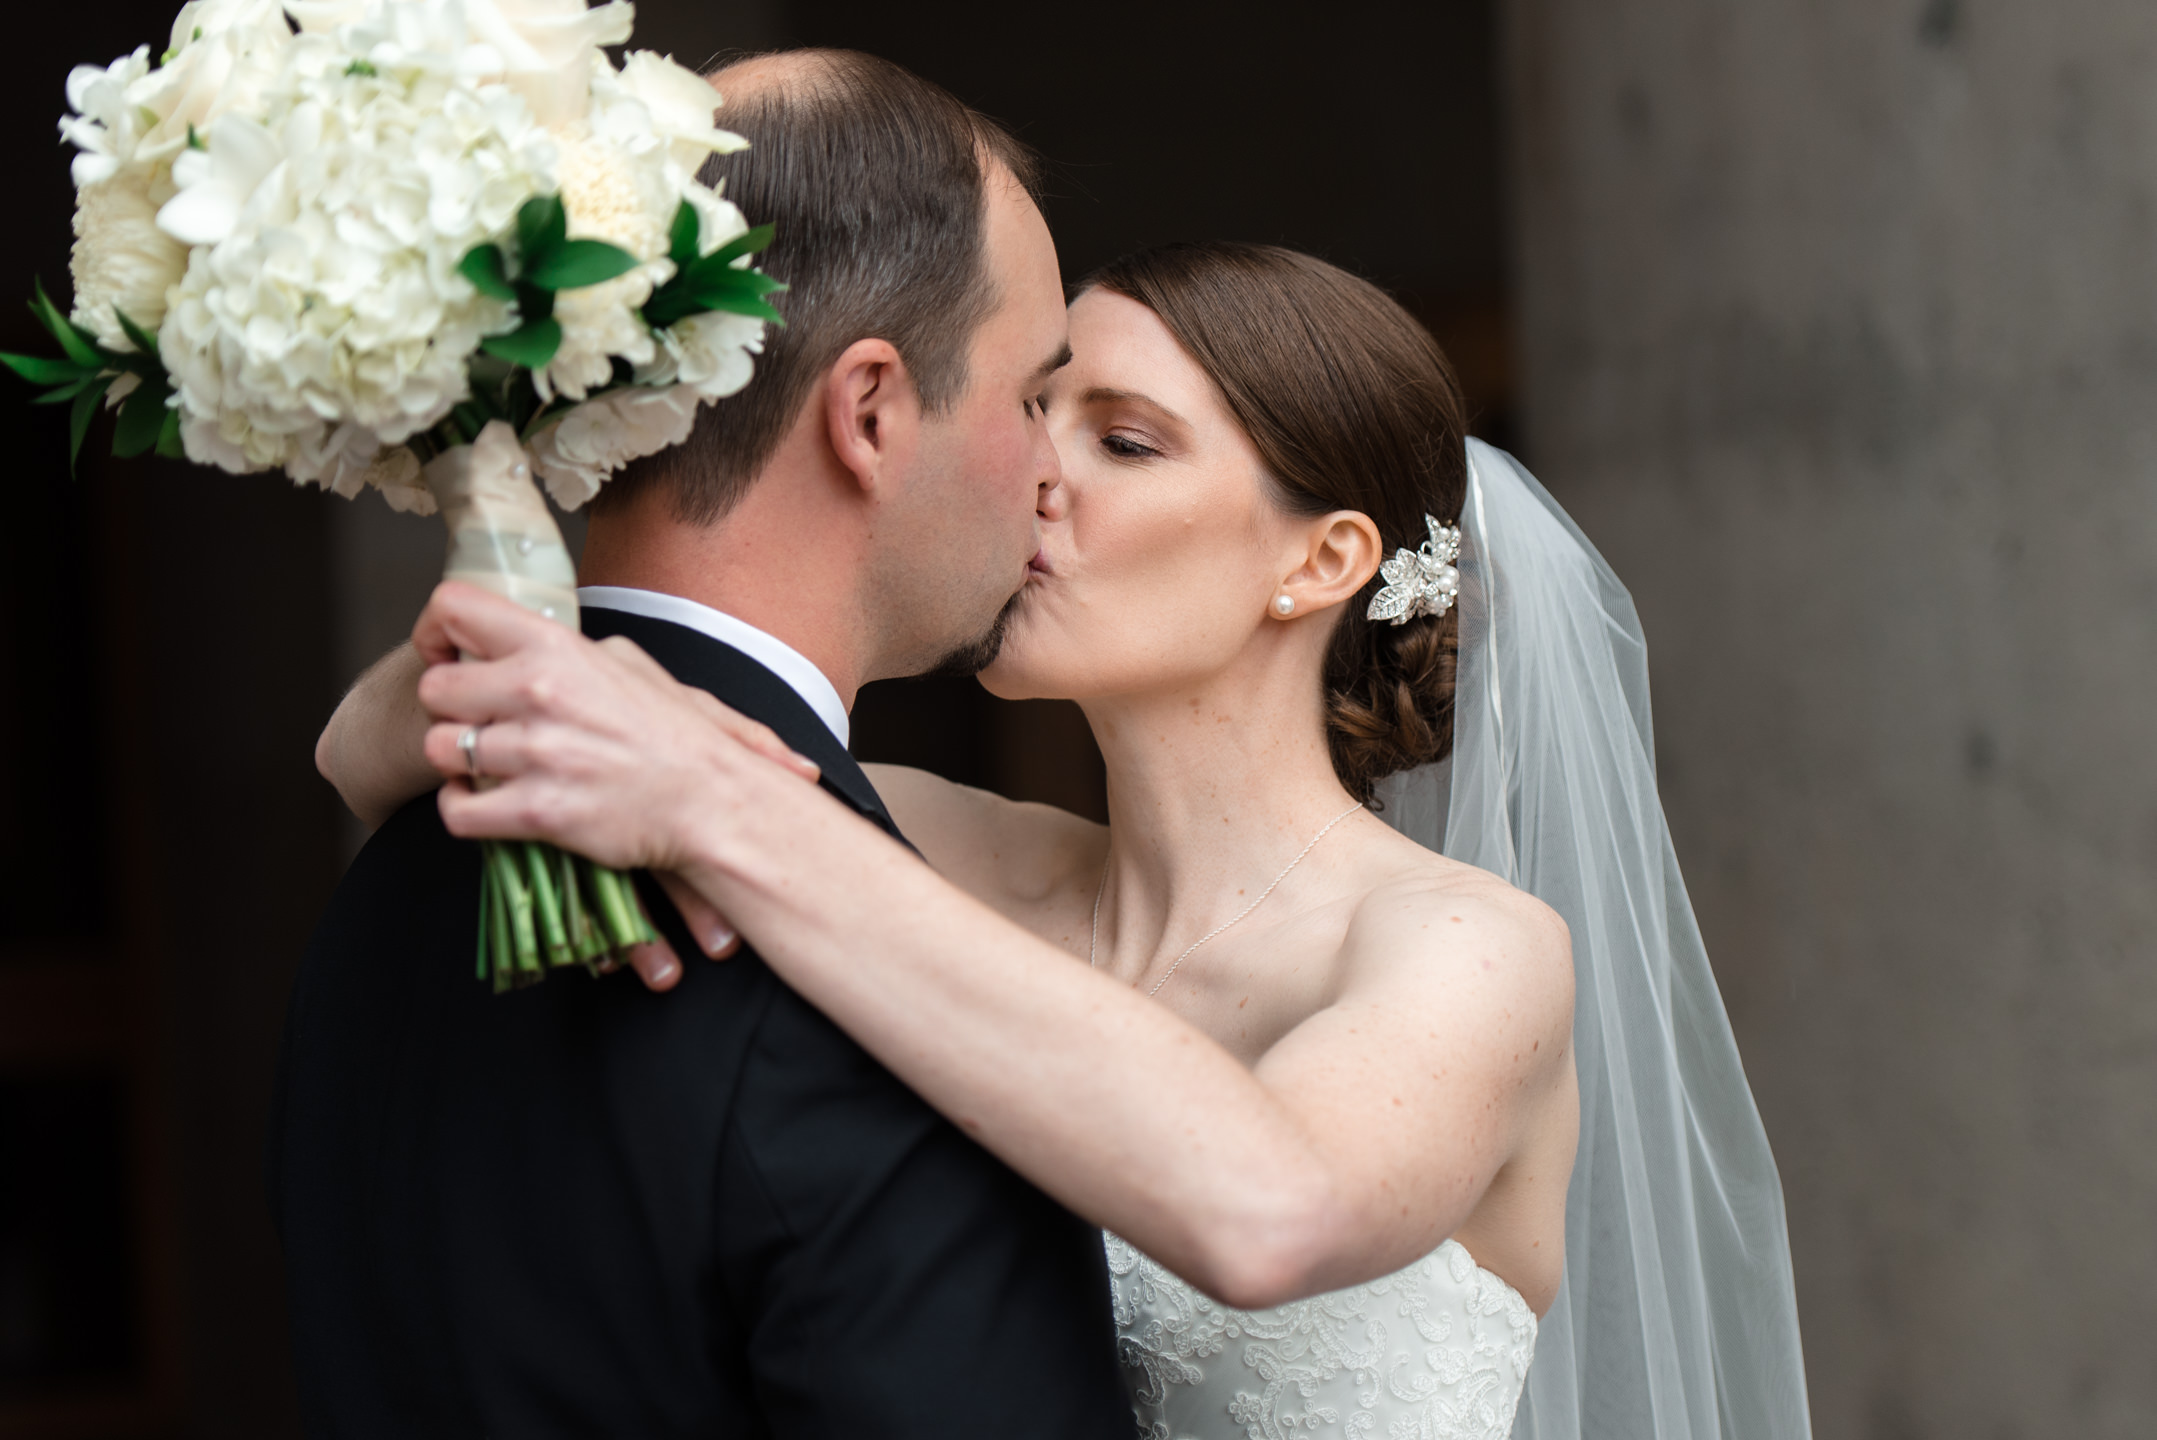 Bride and Groom First Look Kiss at University of Washington